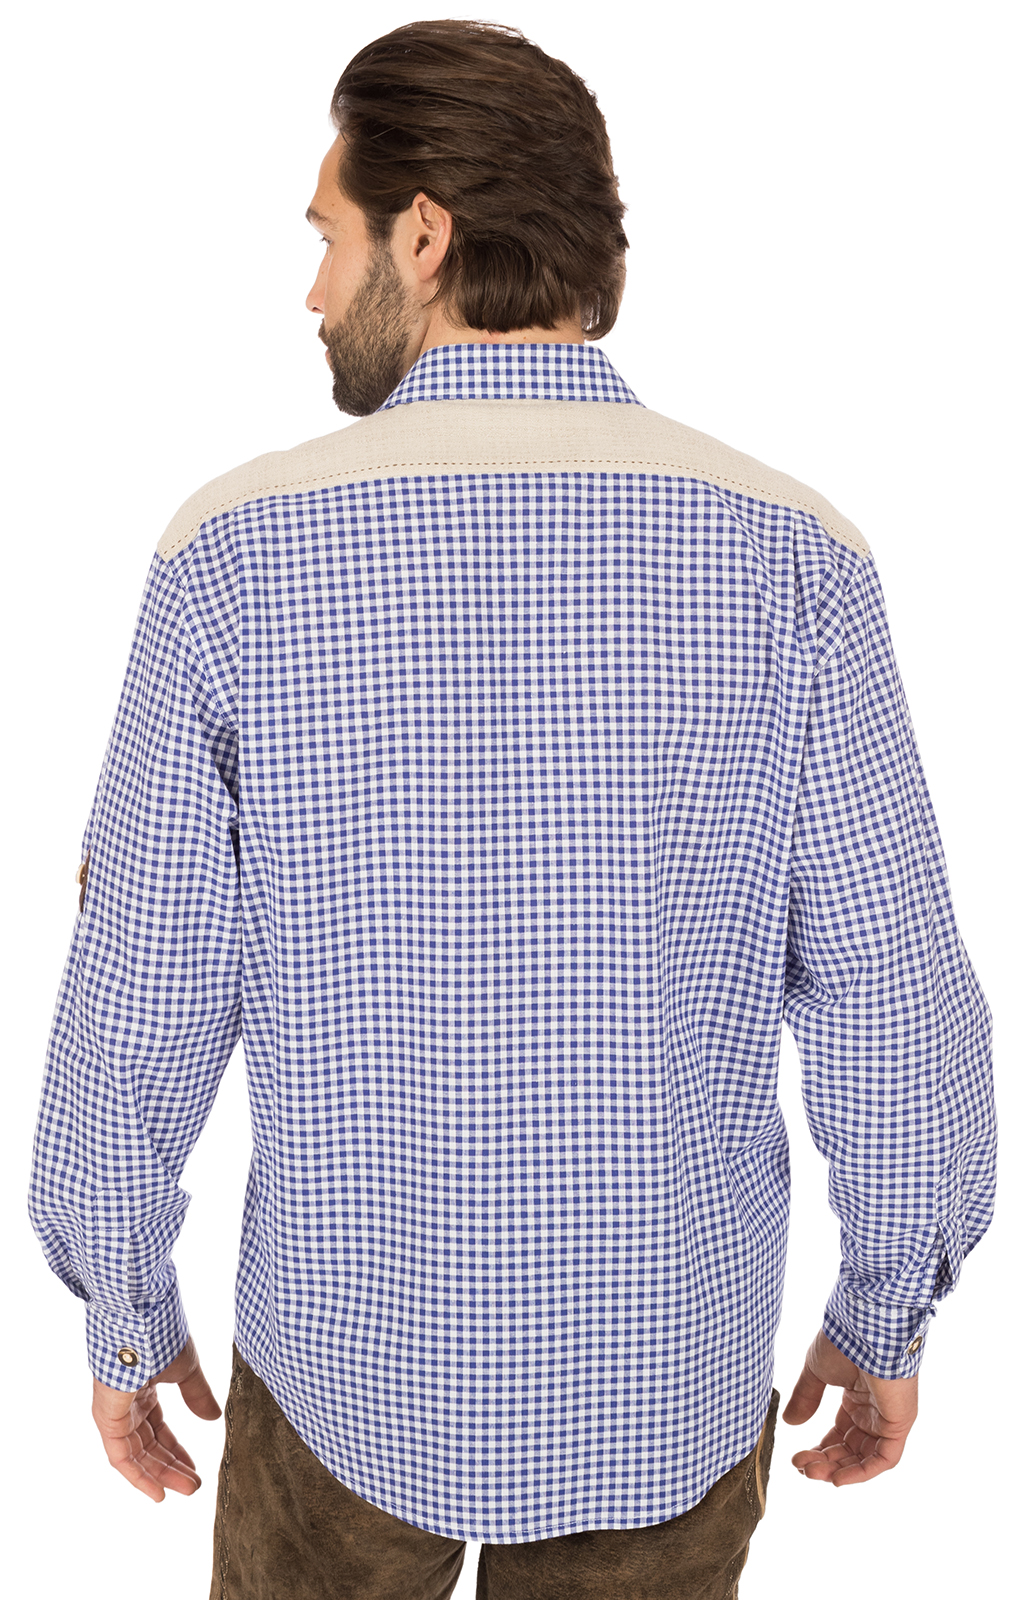 weitere Bilder von German traditional shirt BELINI blue